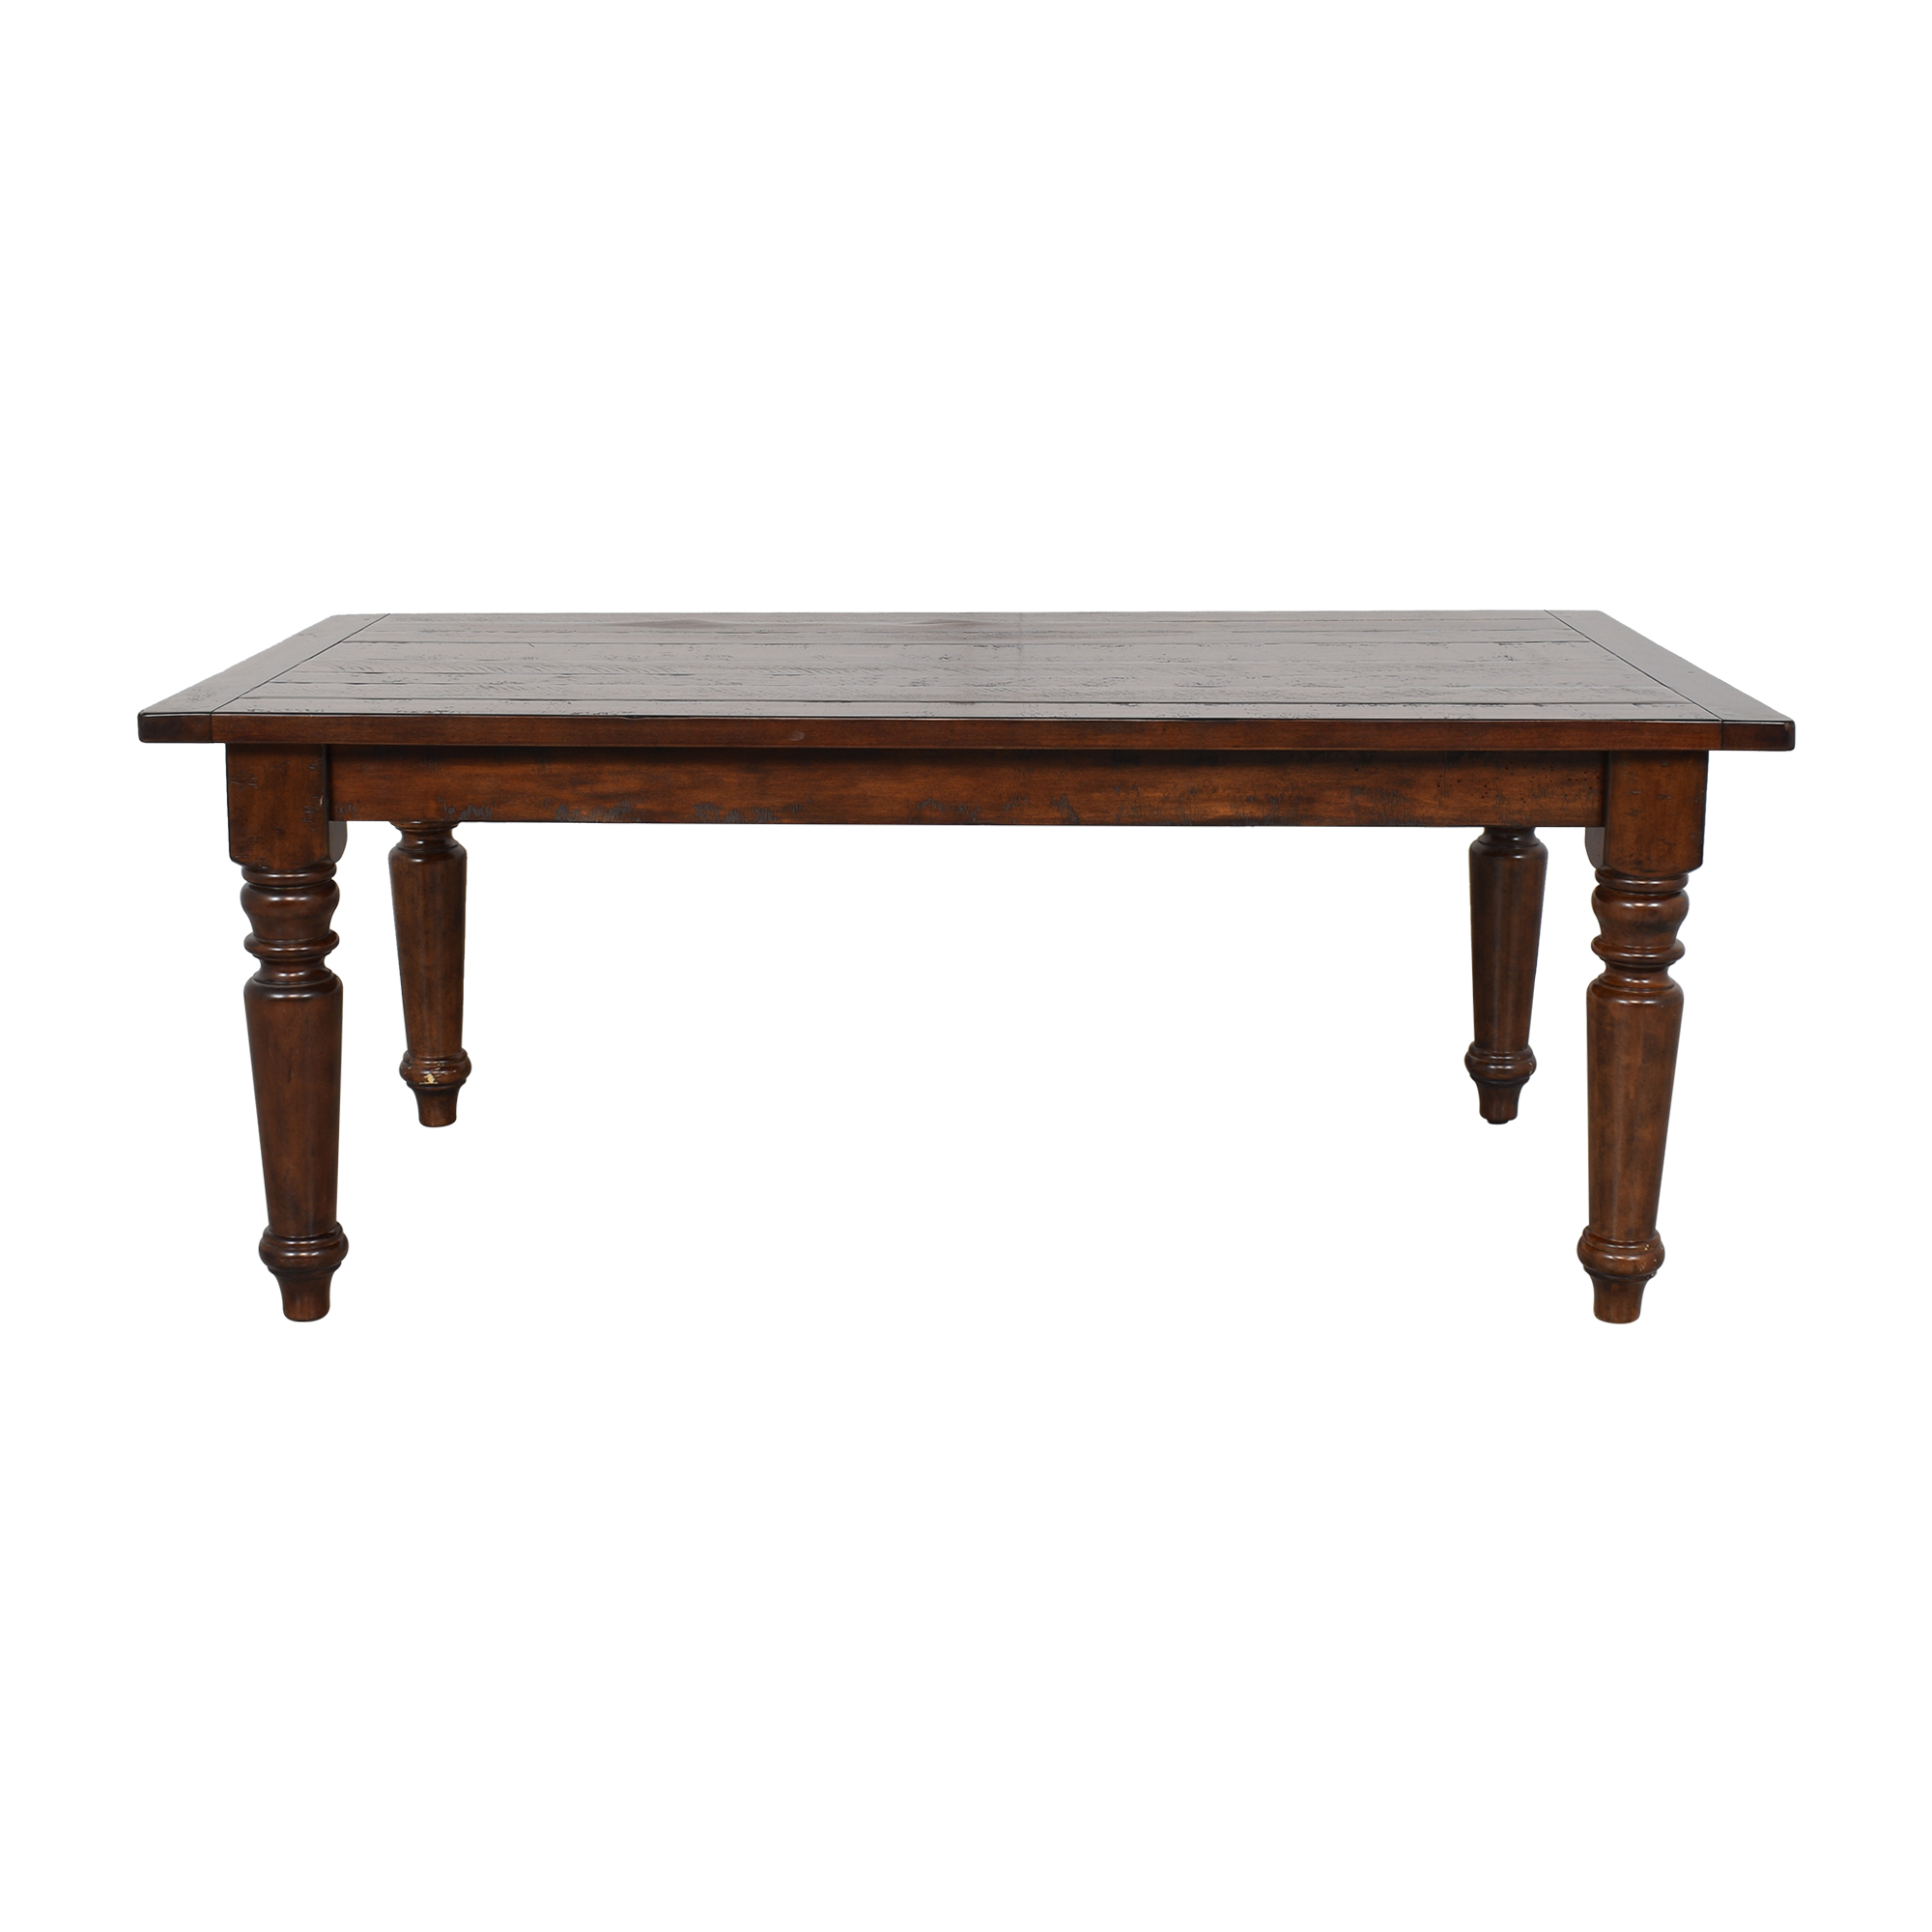 Pottery Barn Sumner Extending Dining Table Pottery Barn